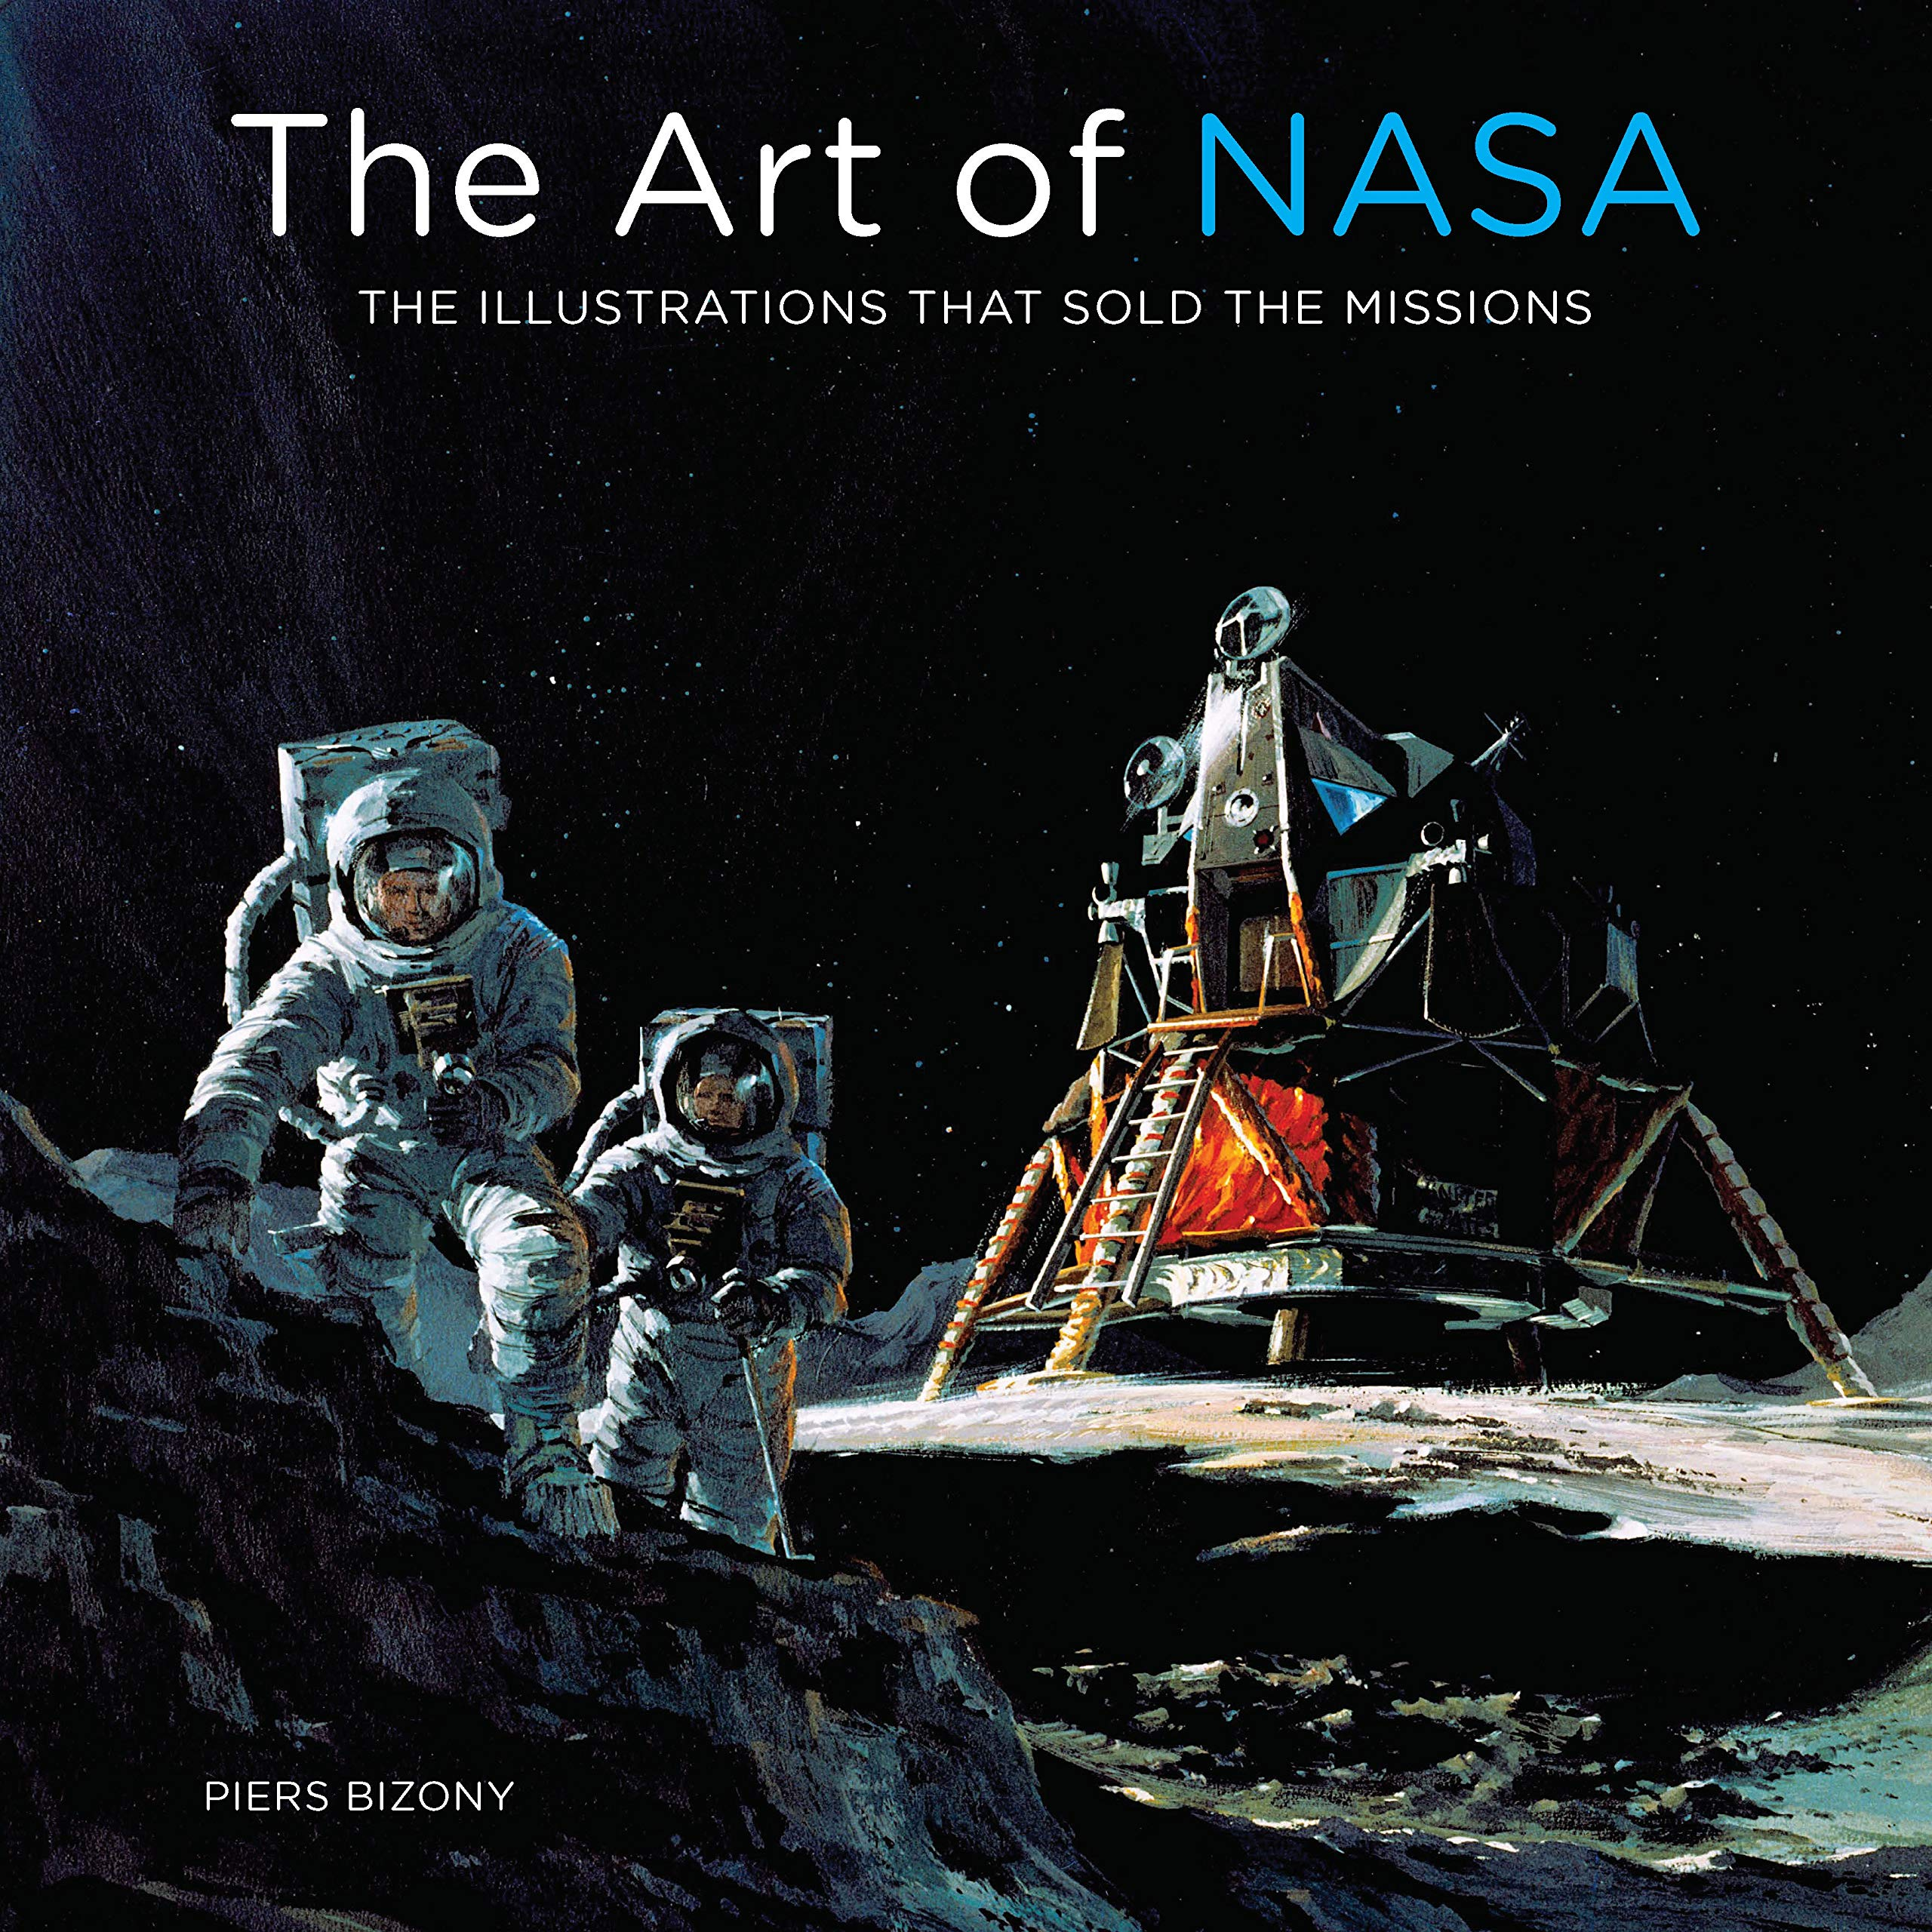 The Art of NASA: The Illustrations That Sold the Missions